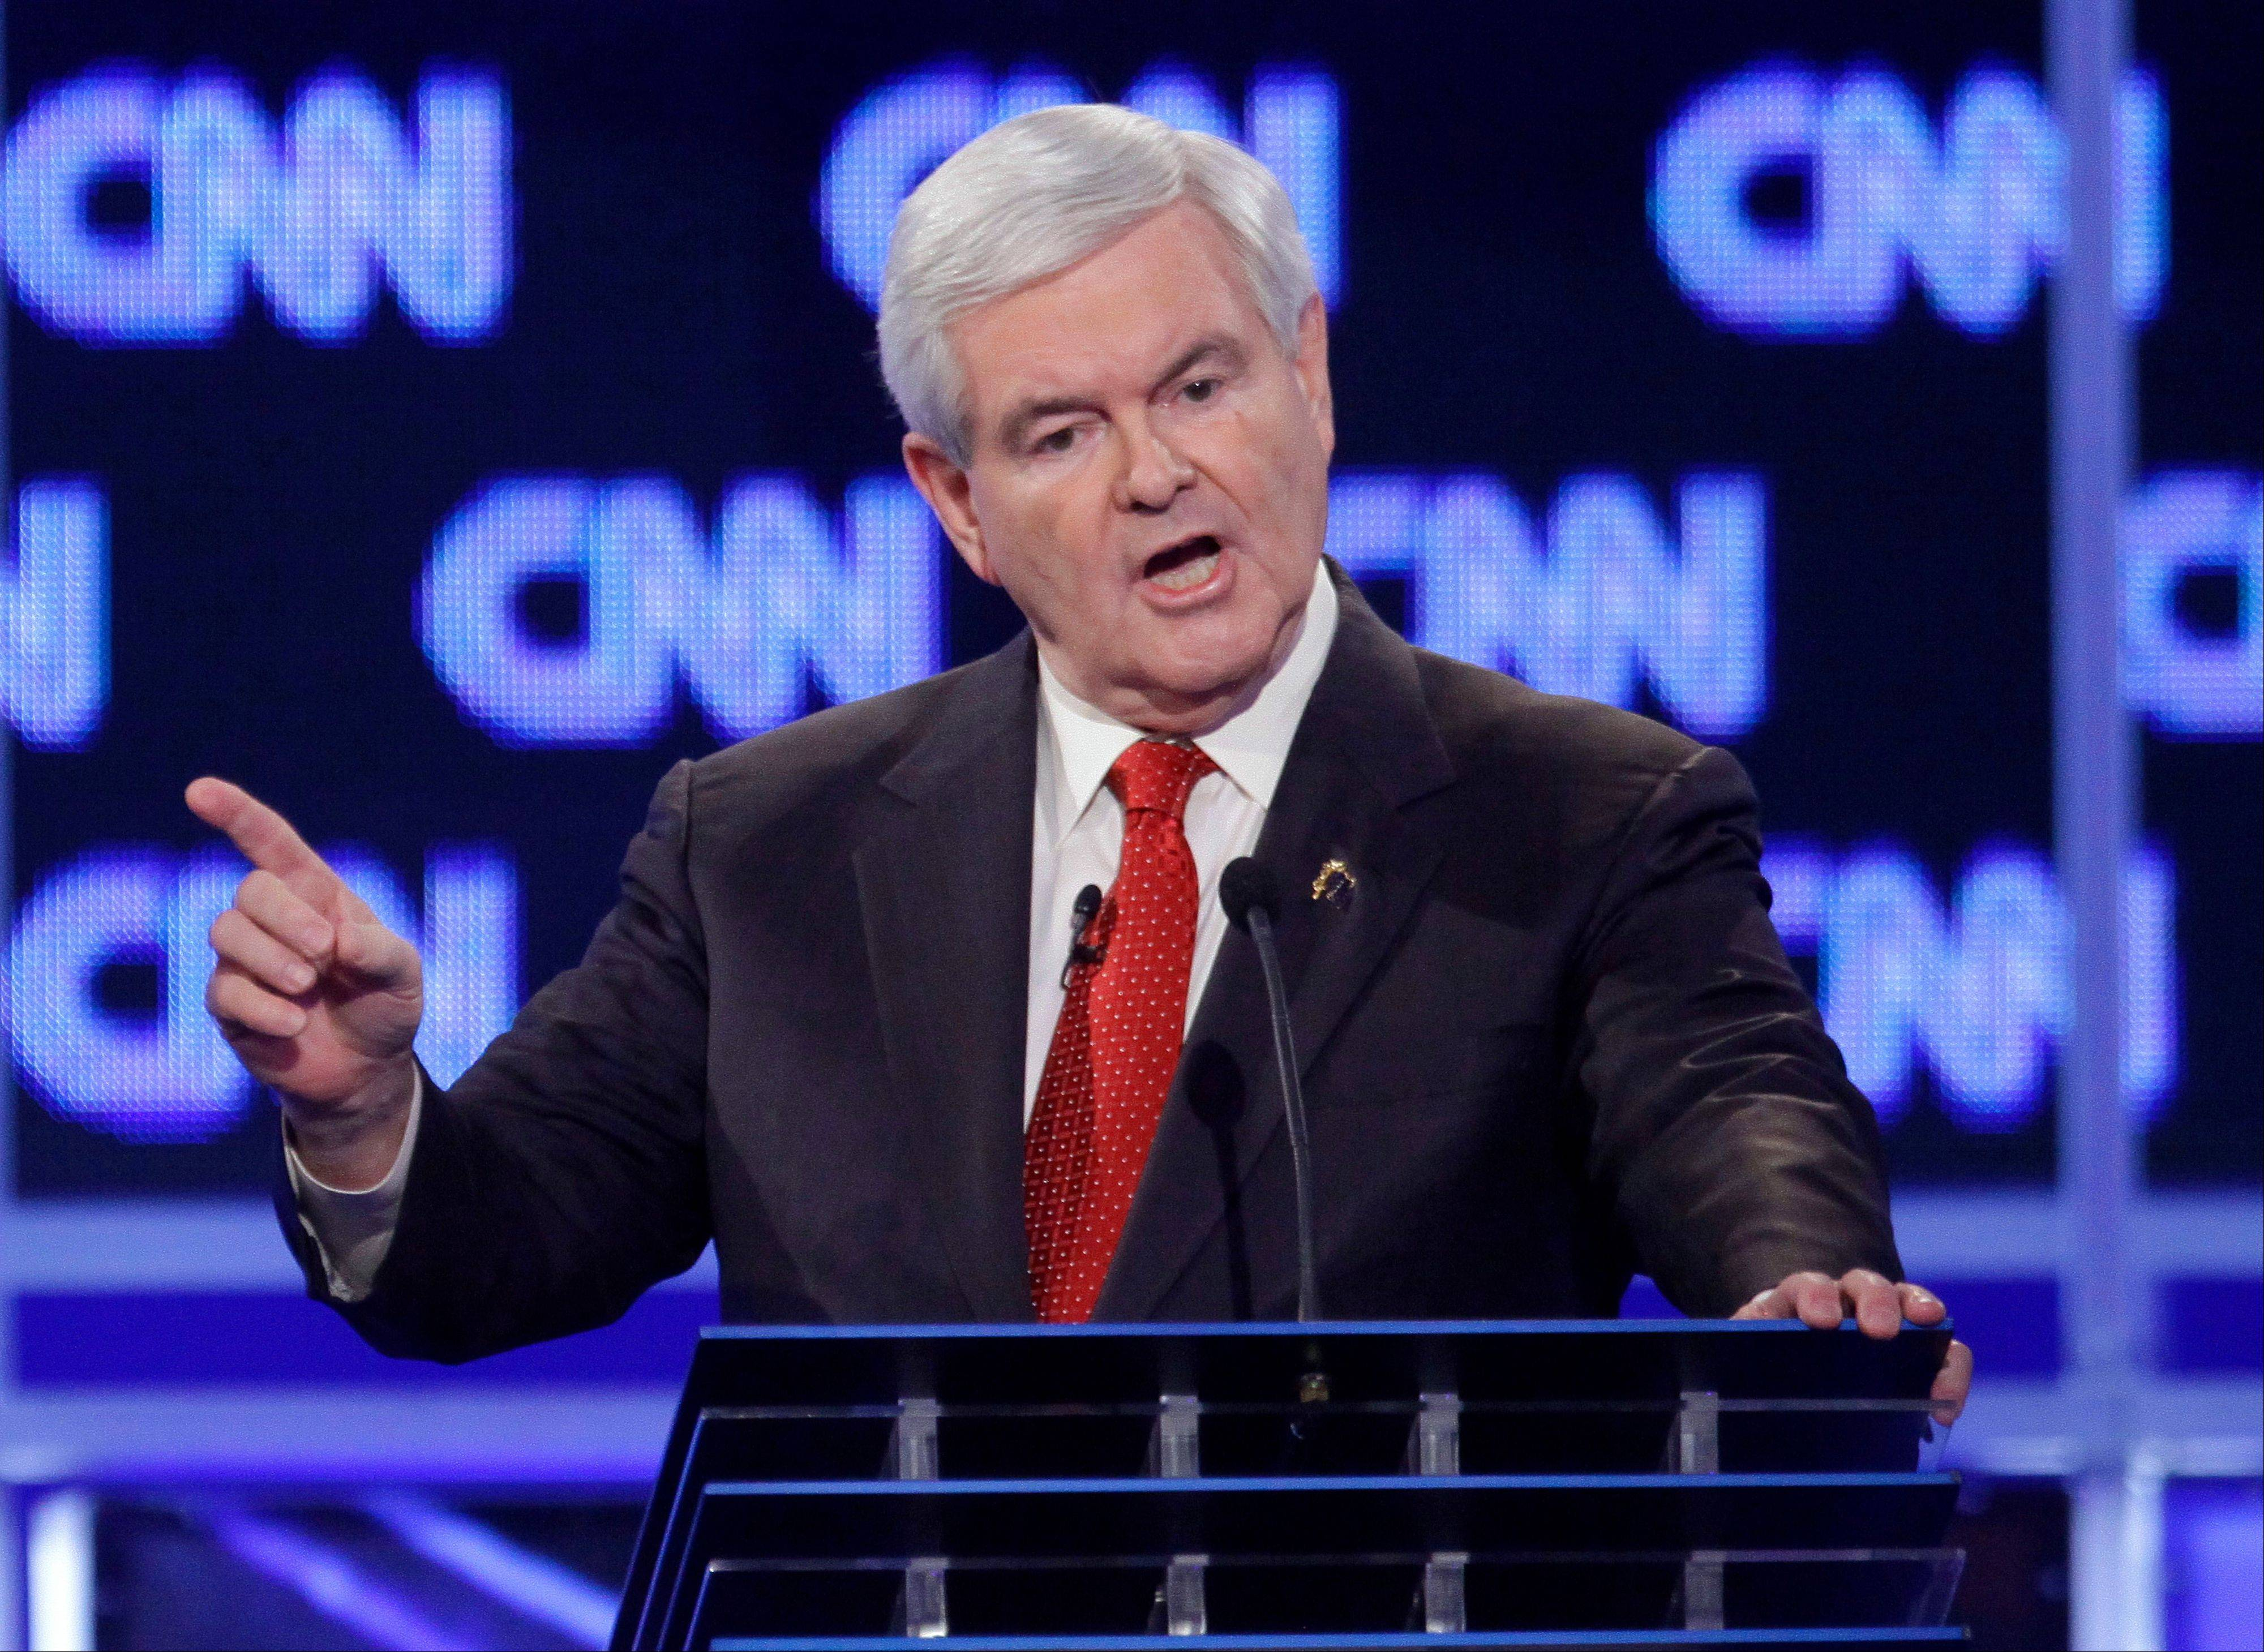 Talk with the Editor: Was the Gingrich open-marriage question fair?